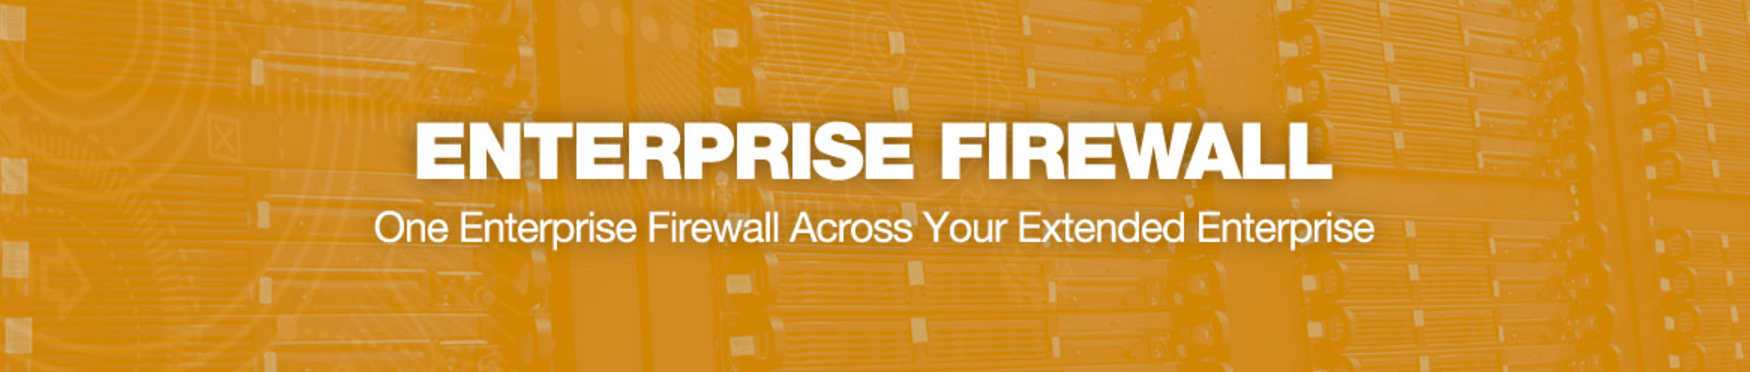 Fortinet Enterprise Firewall